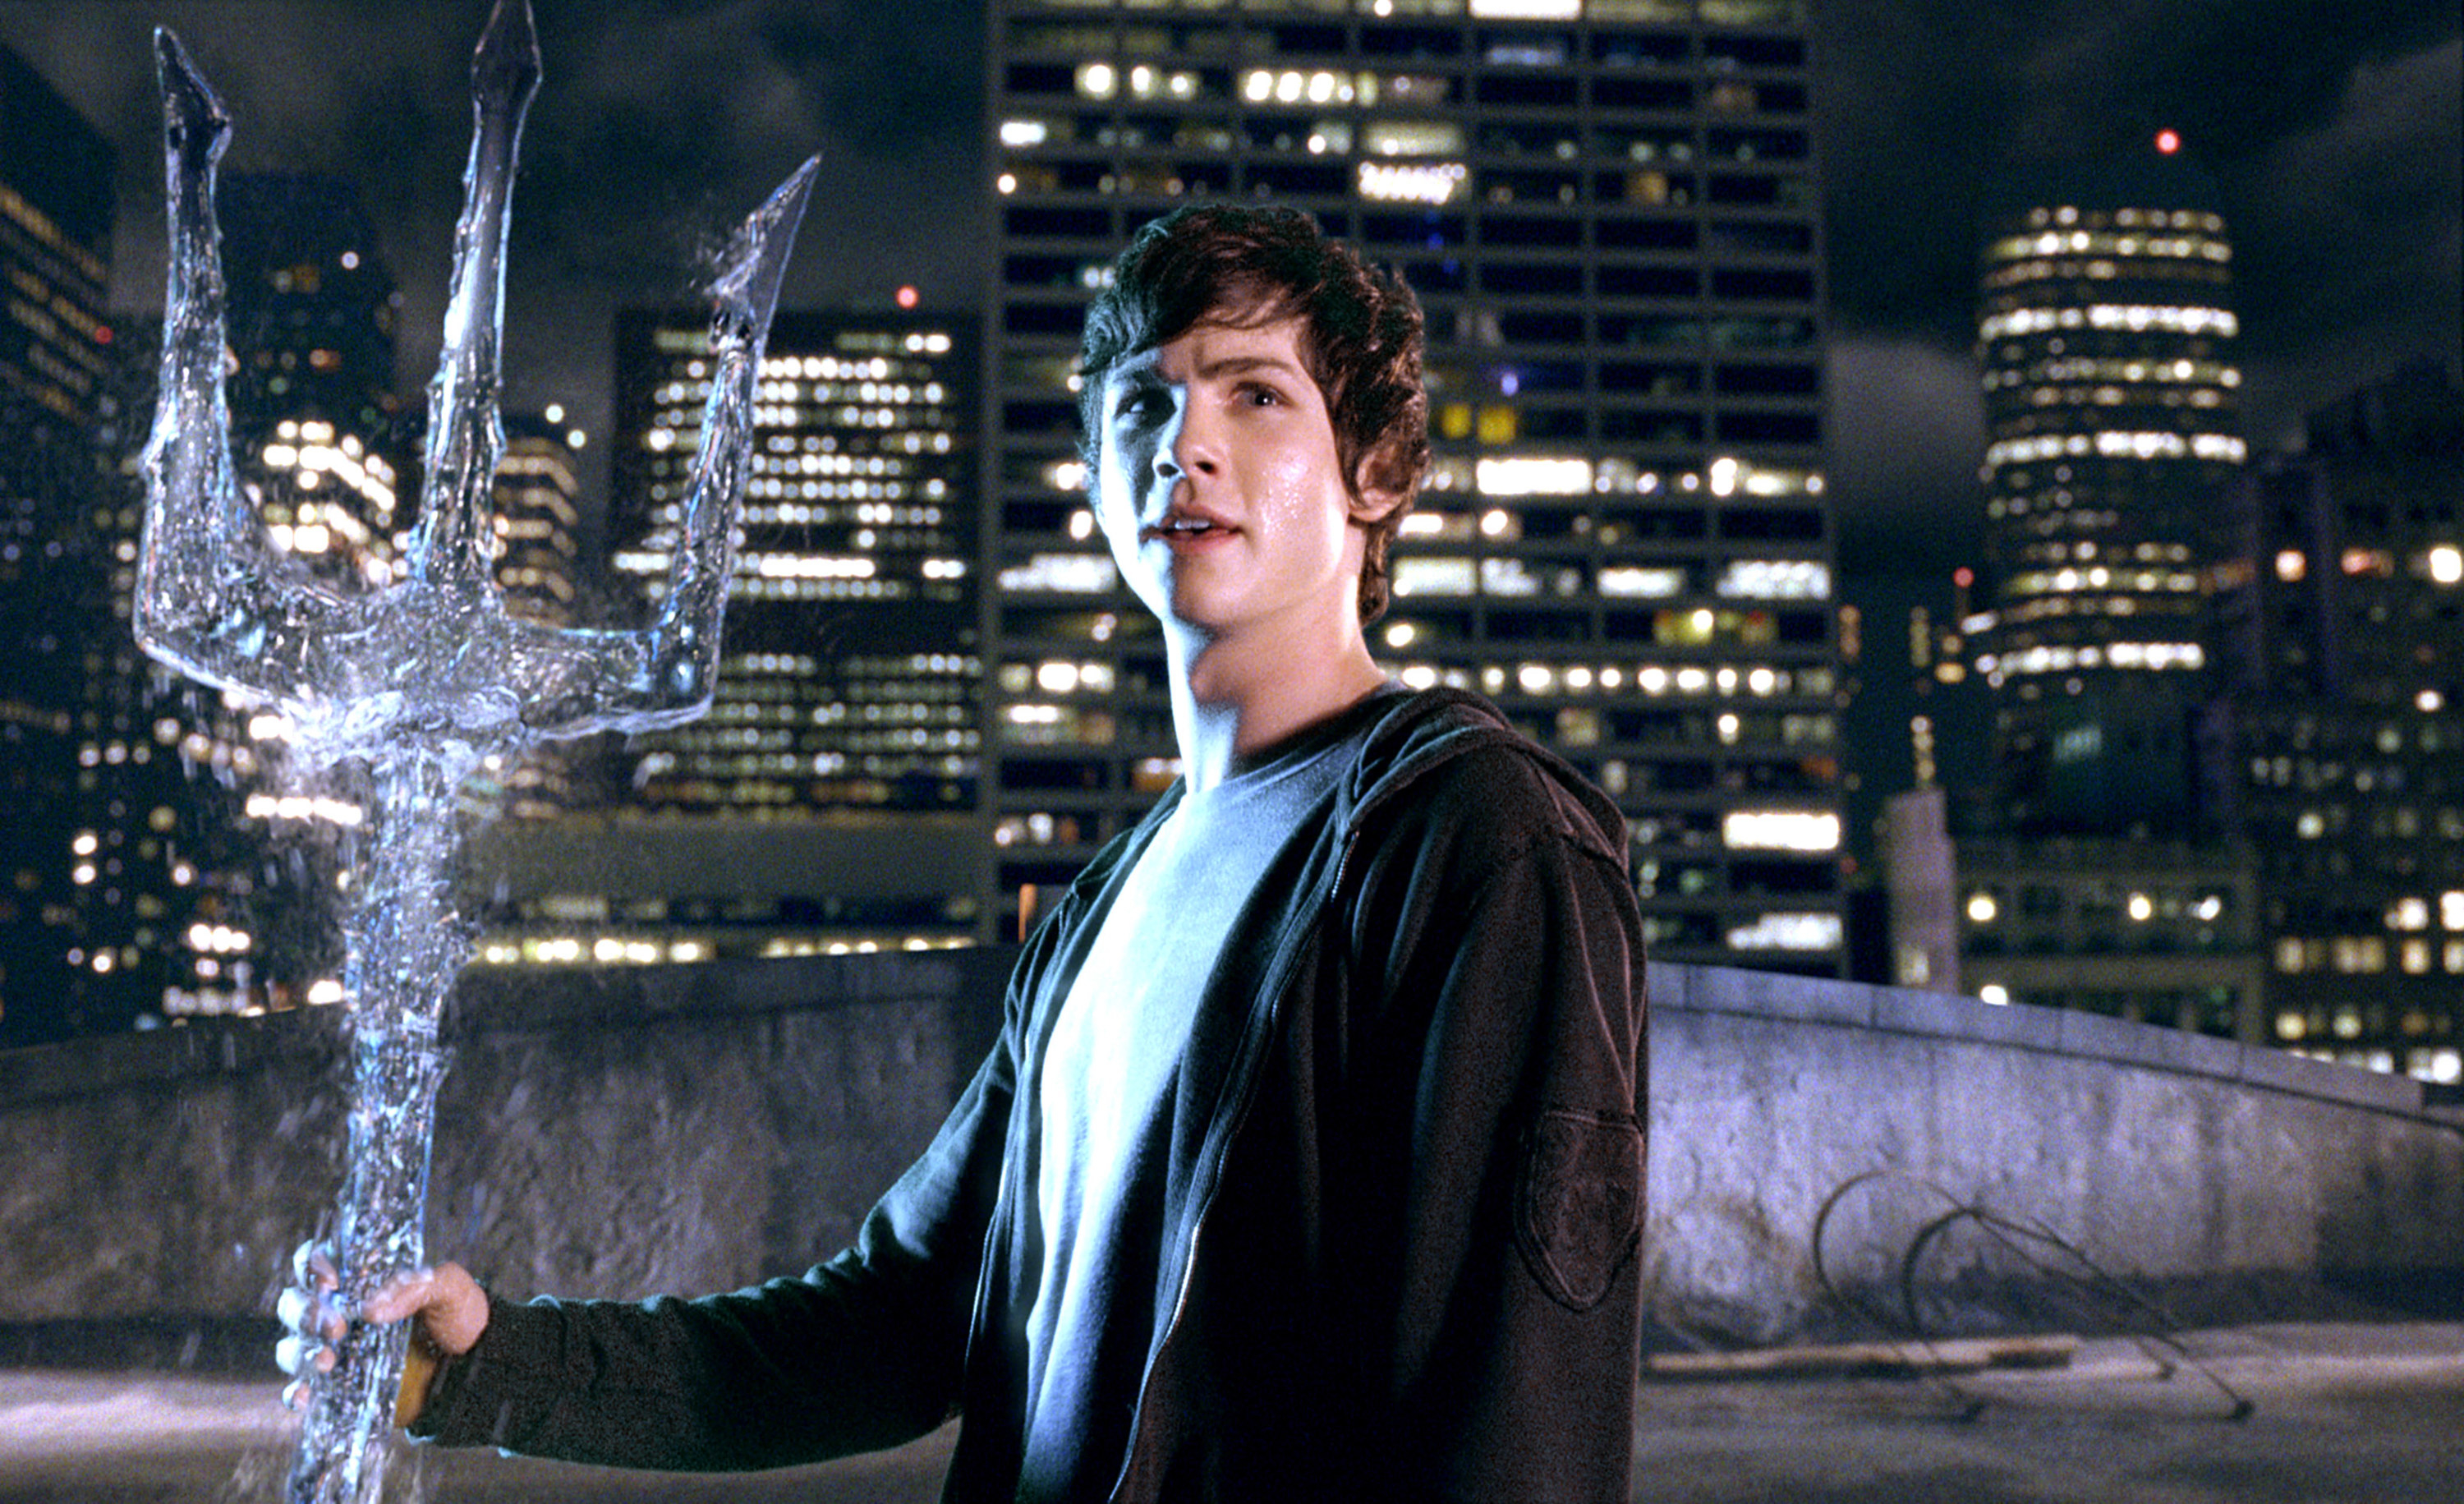 Logan holding a water trident in the film